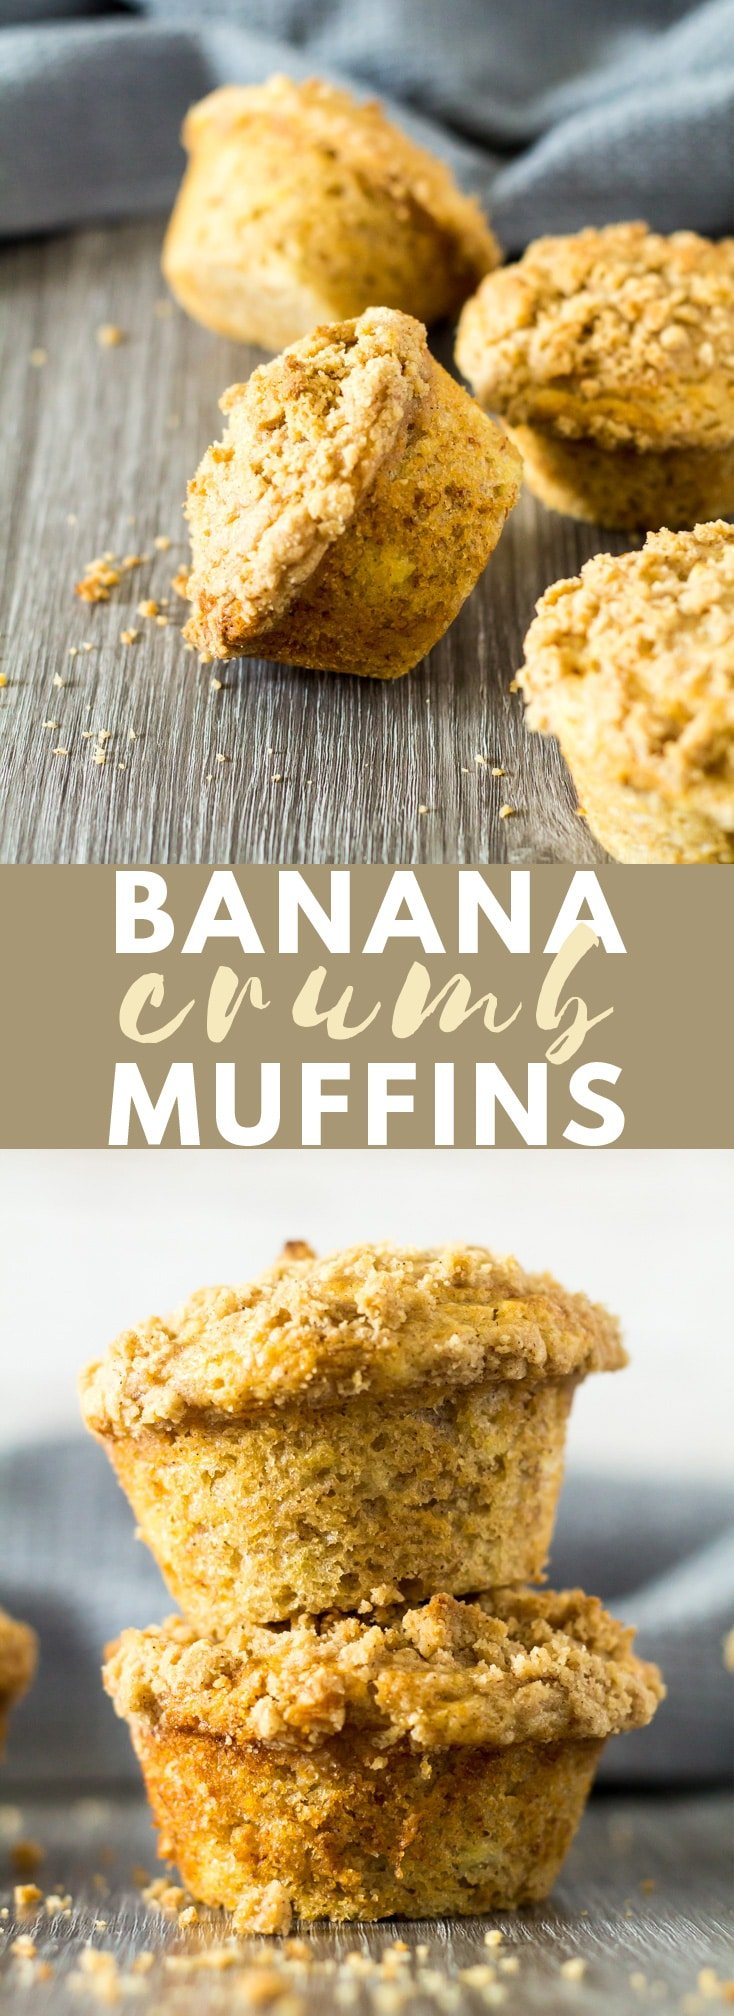 Banana Crumb Muffins - Deliciously moist and fluffy cinnamon-spiced muffins that are loaded with banana flavour, and topped with a buttery crumb. Perfect for an indulgent breakfast or snack! #banana #bananarecipes #muffins #muffinrecipes #recipe